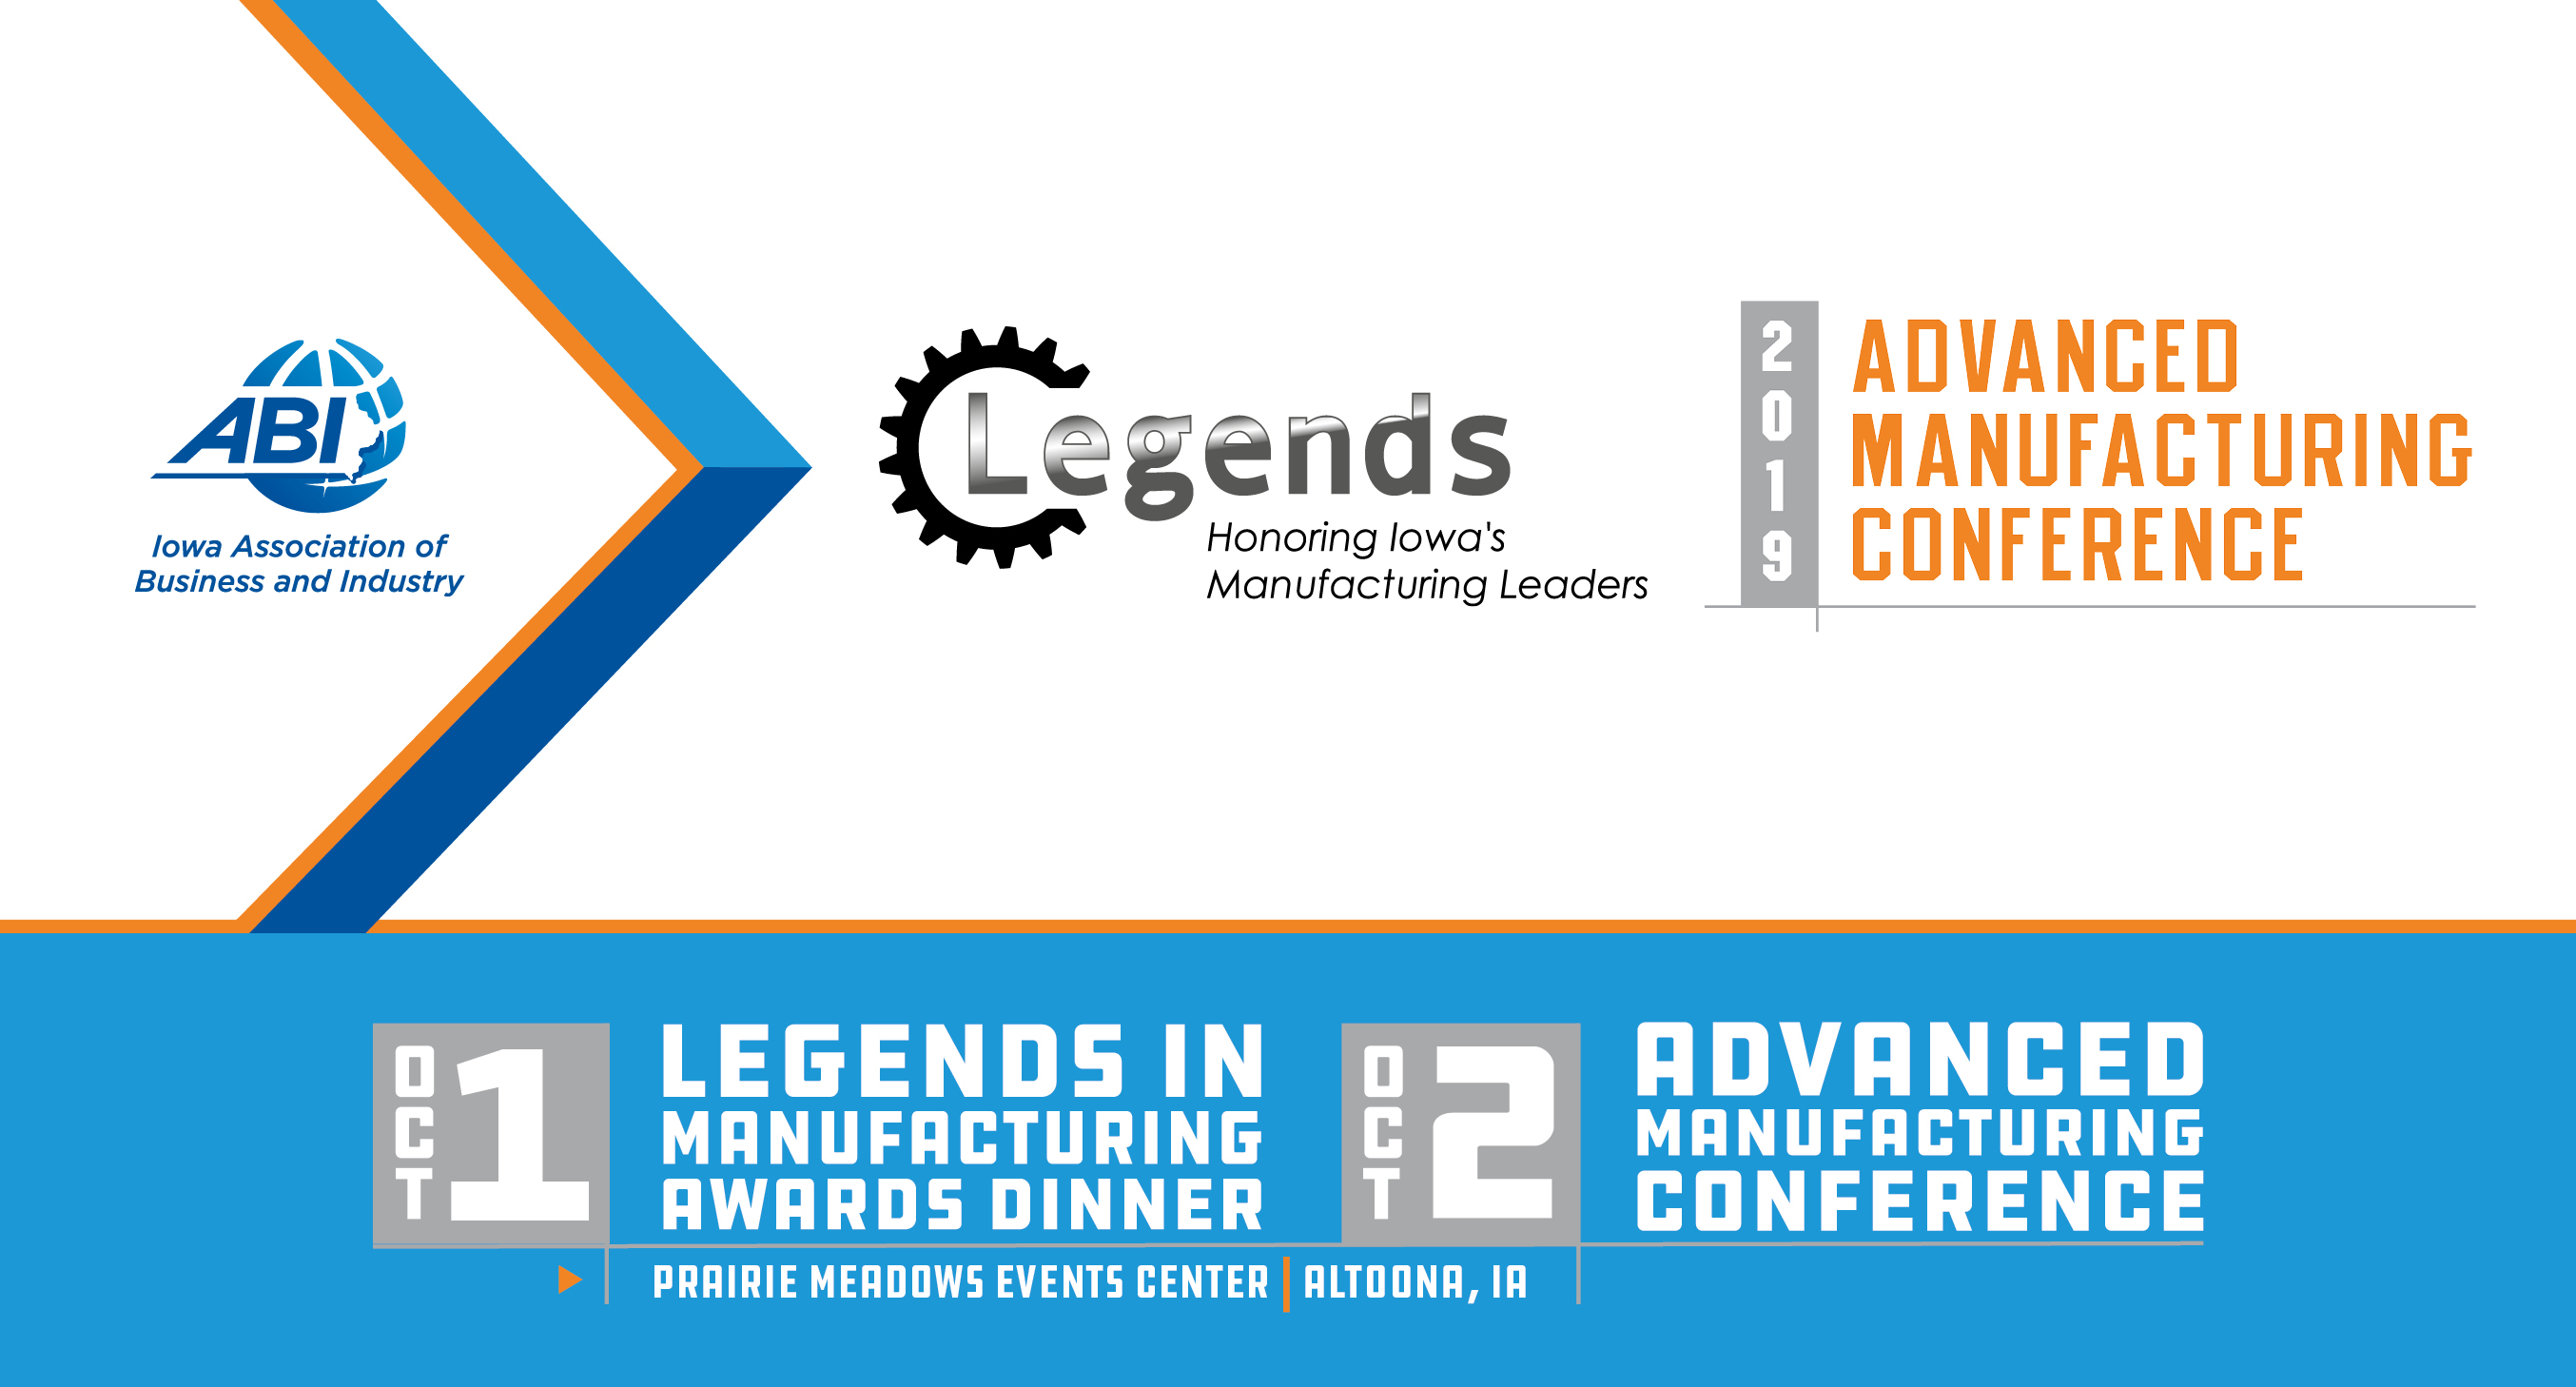 Legends In Manufacturing Awards Dinner (and / or) Advanced Manufacturing Conference